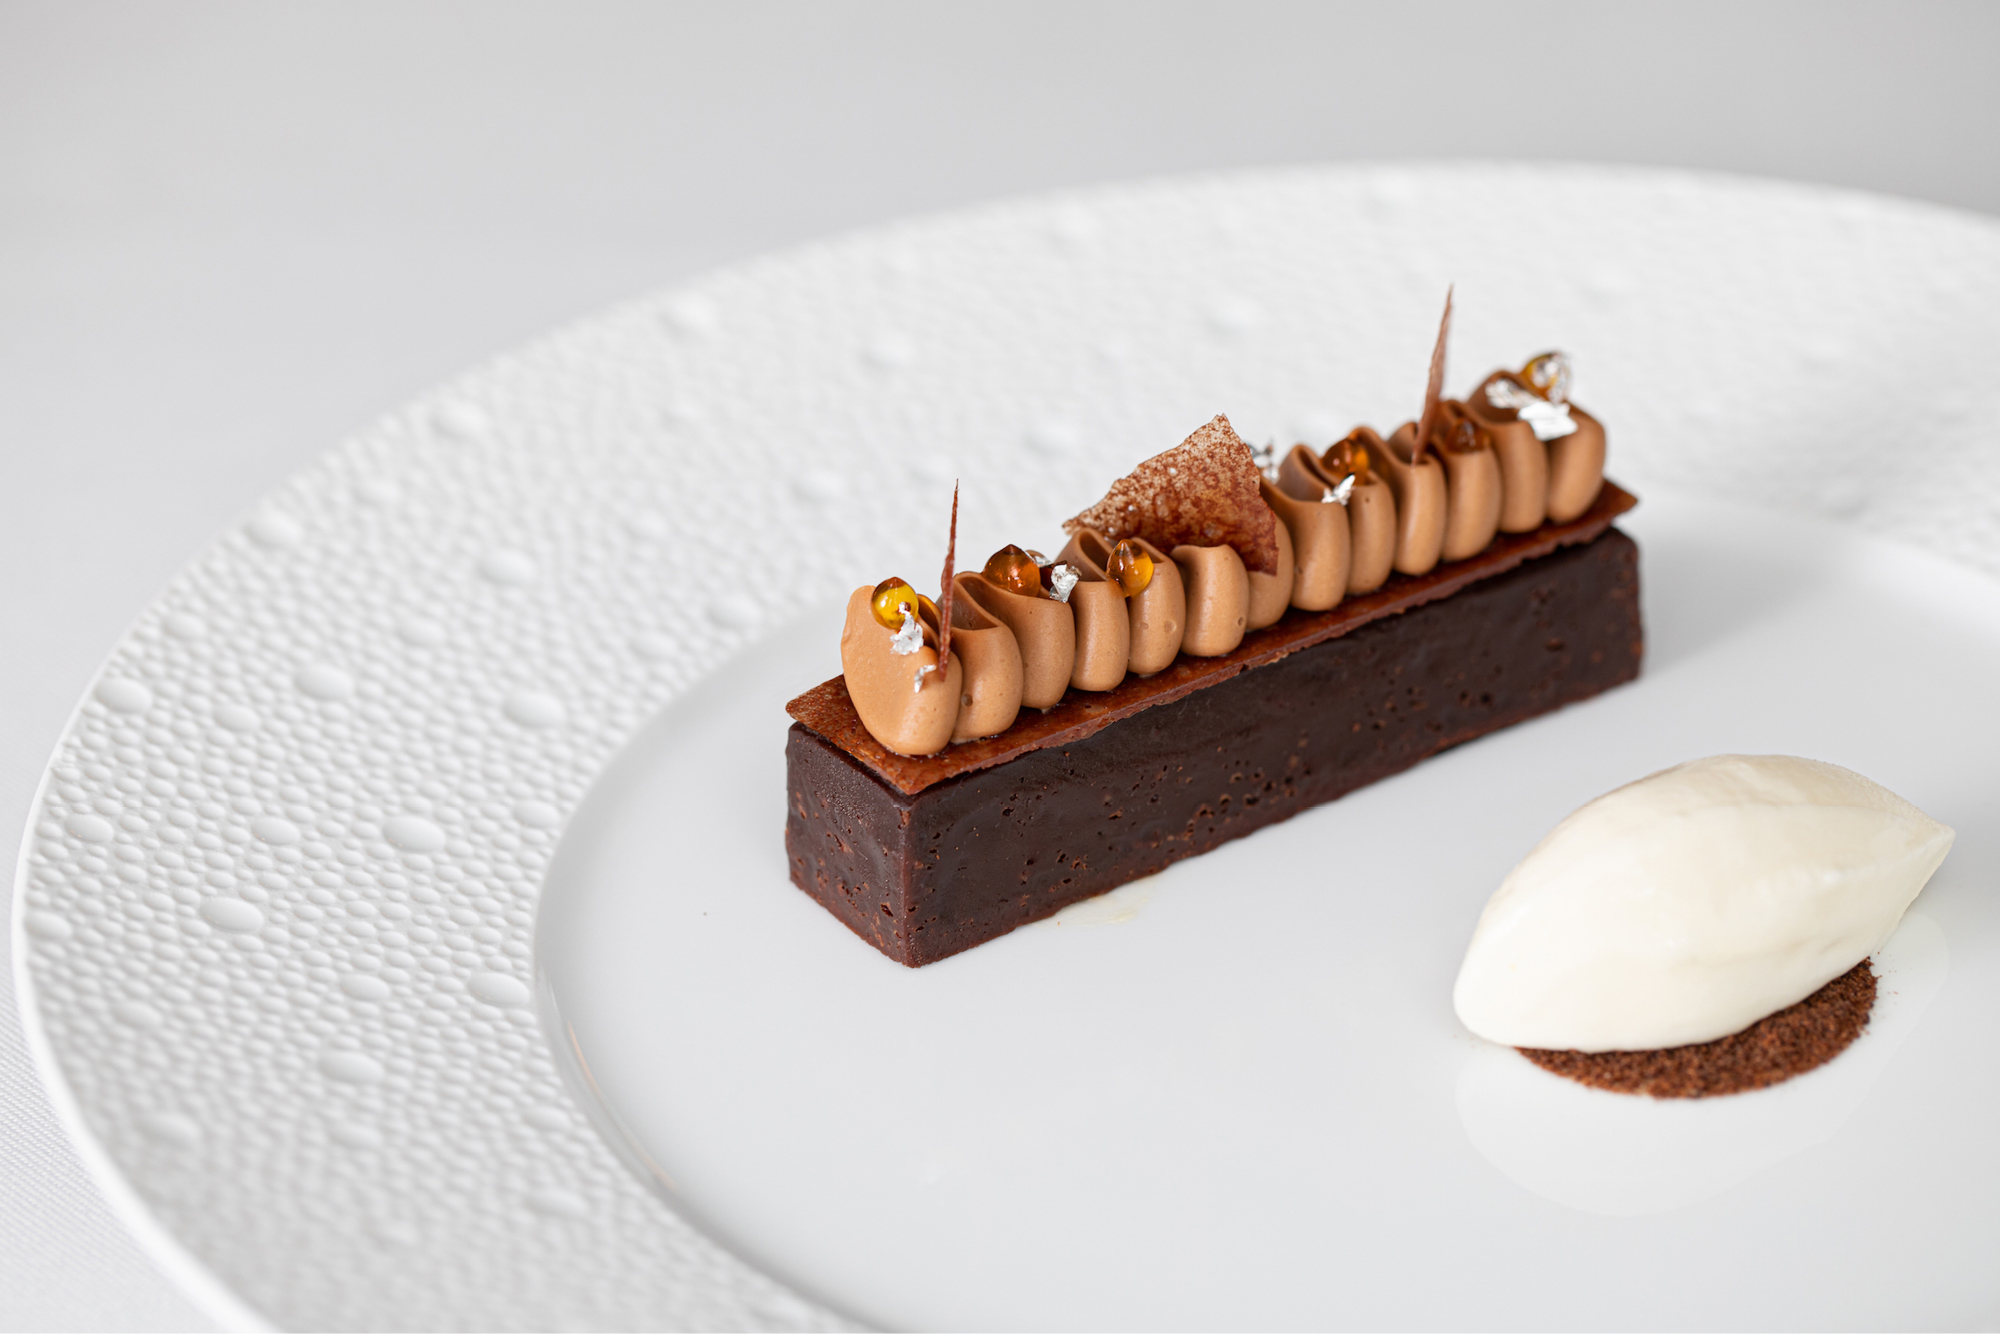 Abinao and tapioca tart with salted milk sorbet, a delicious dessert by Sofian Msetfi for at Ormer Mayfair